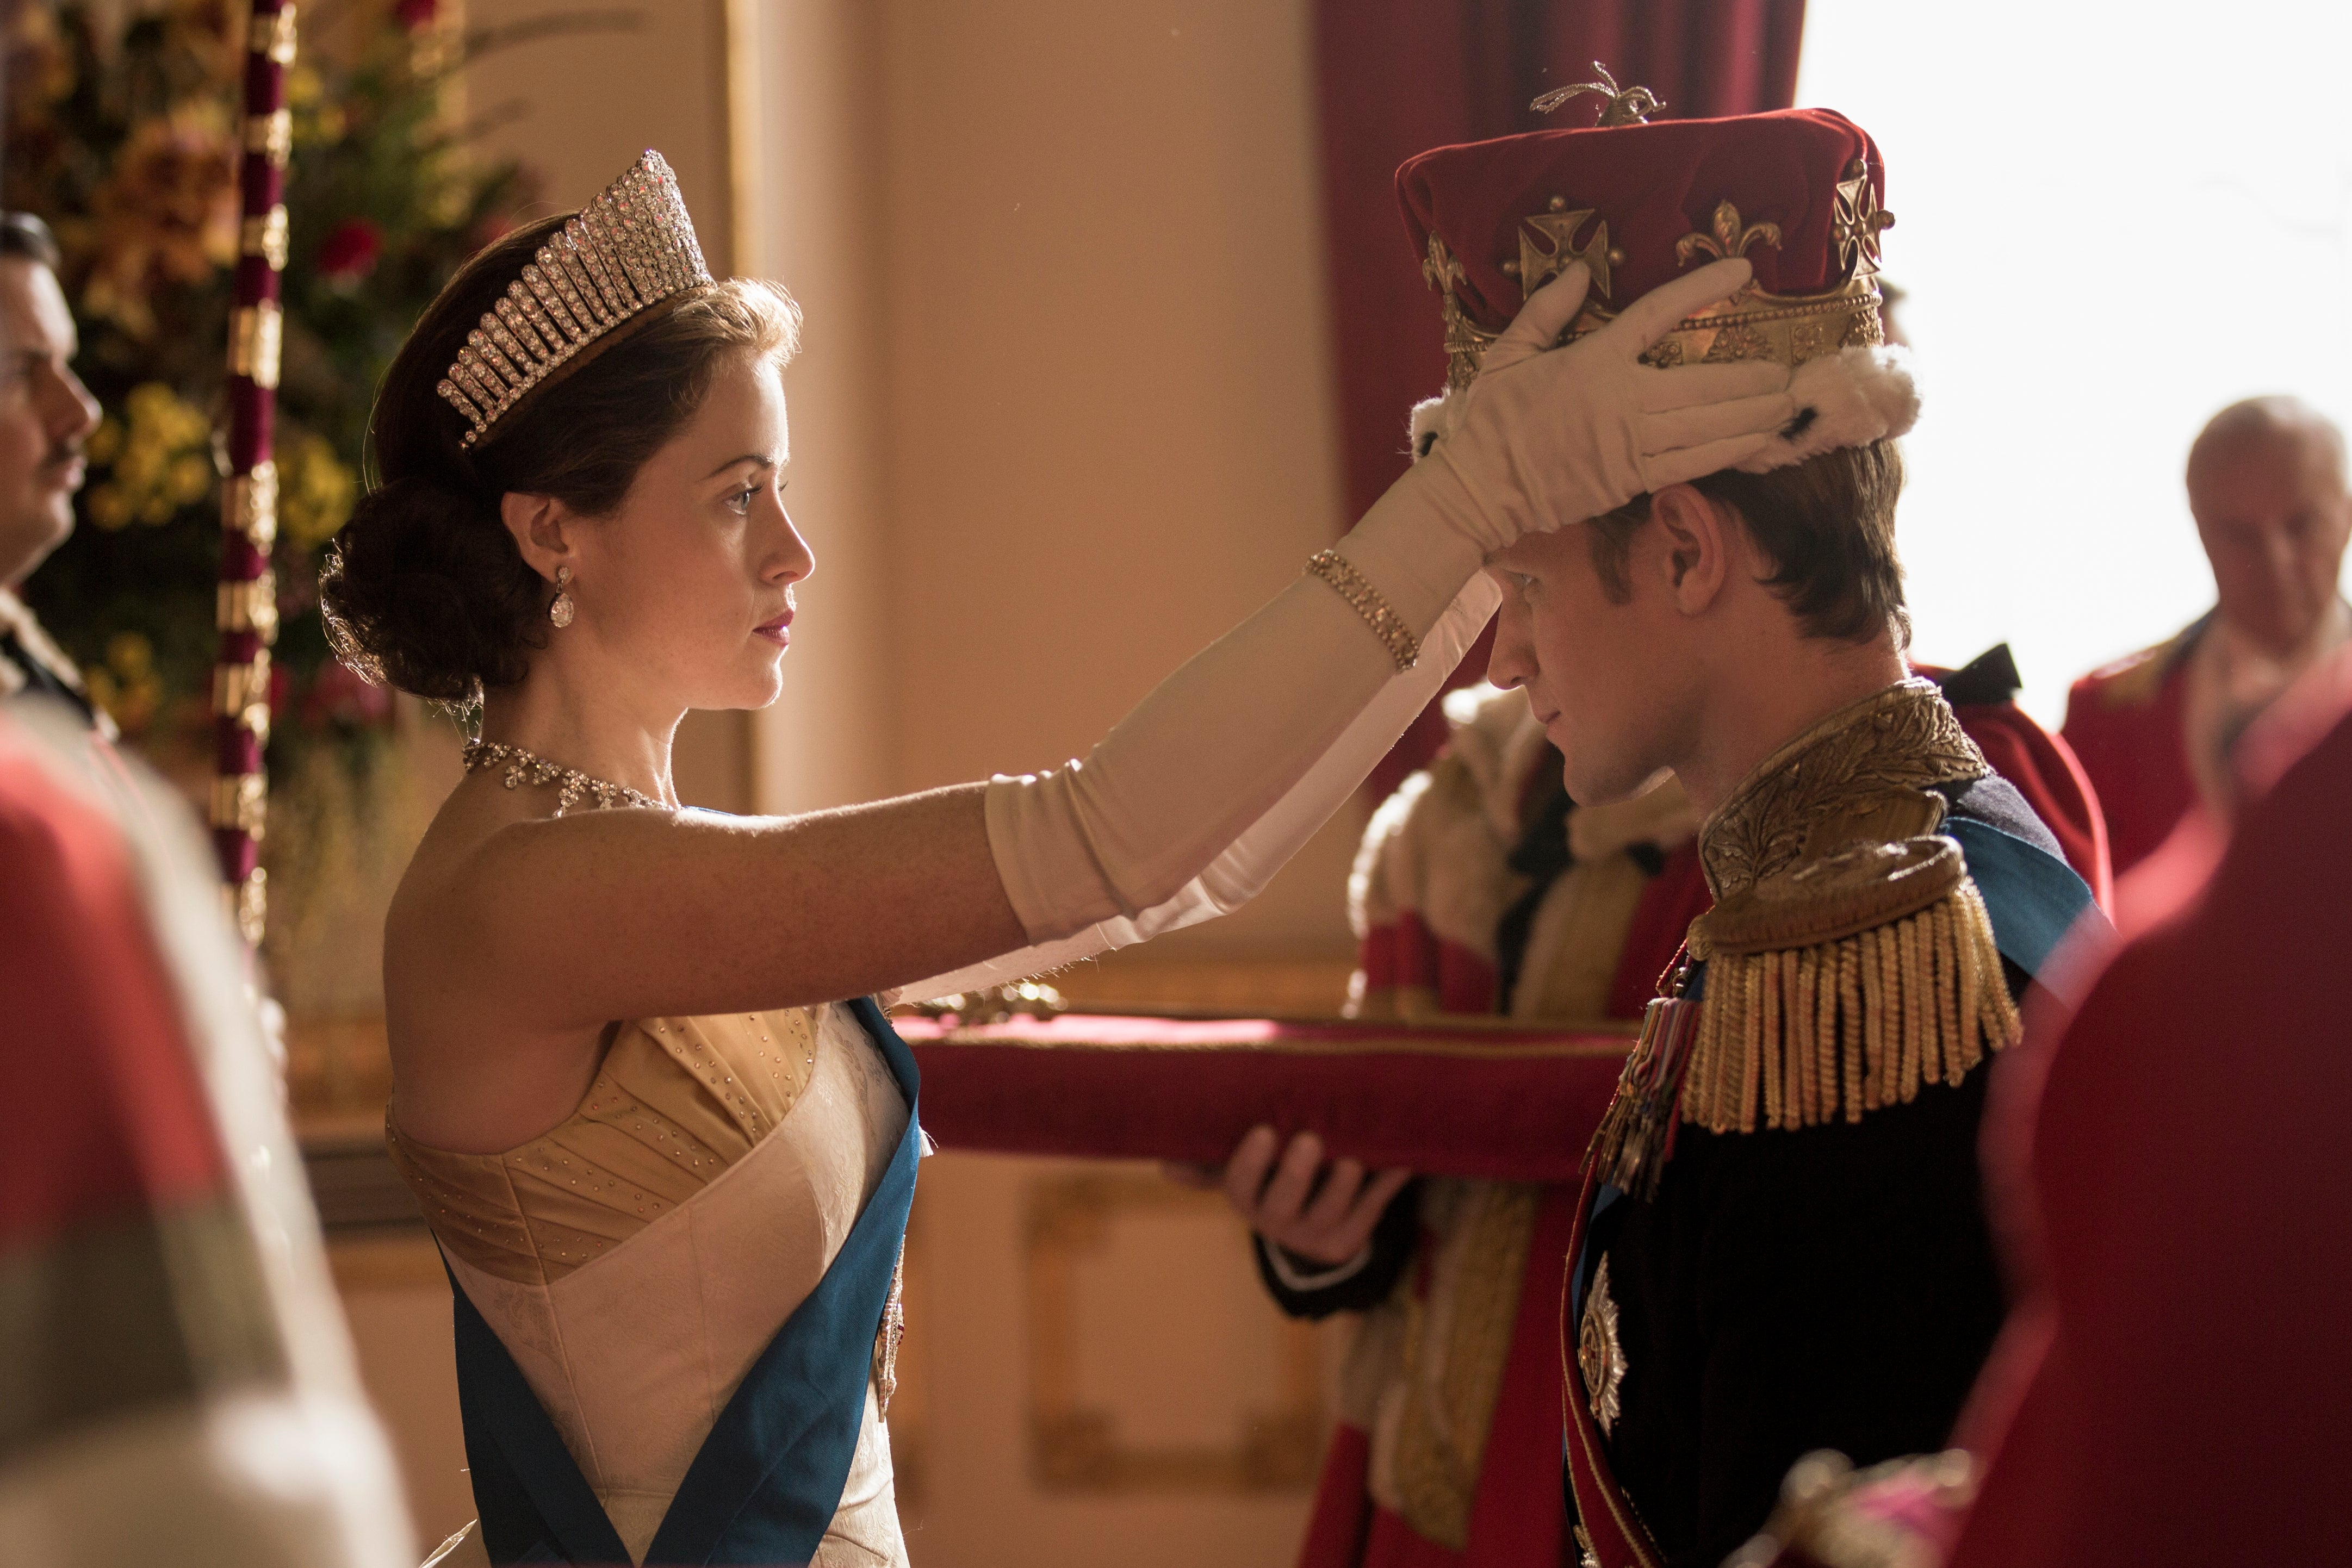 Claire Foy as Queen Elizabeth crowns Matt Smith as Prince Philip.